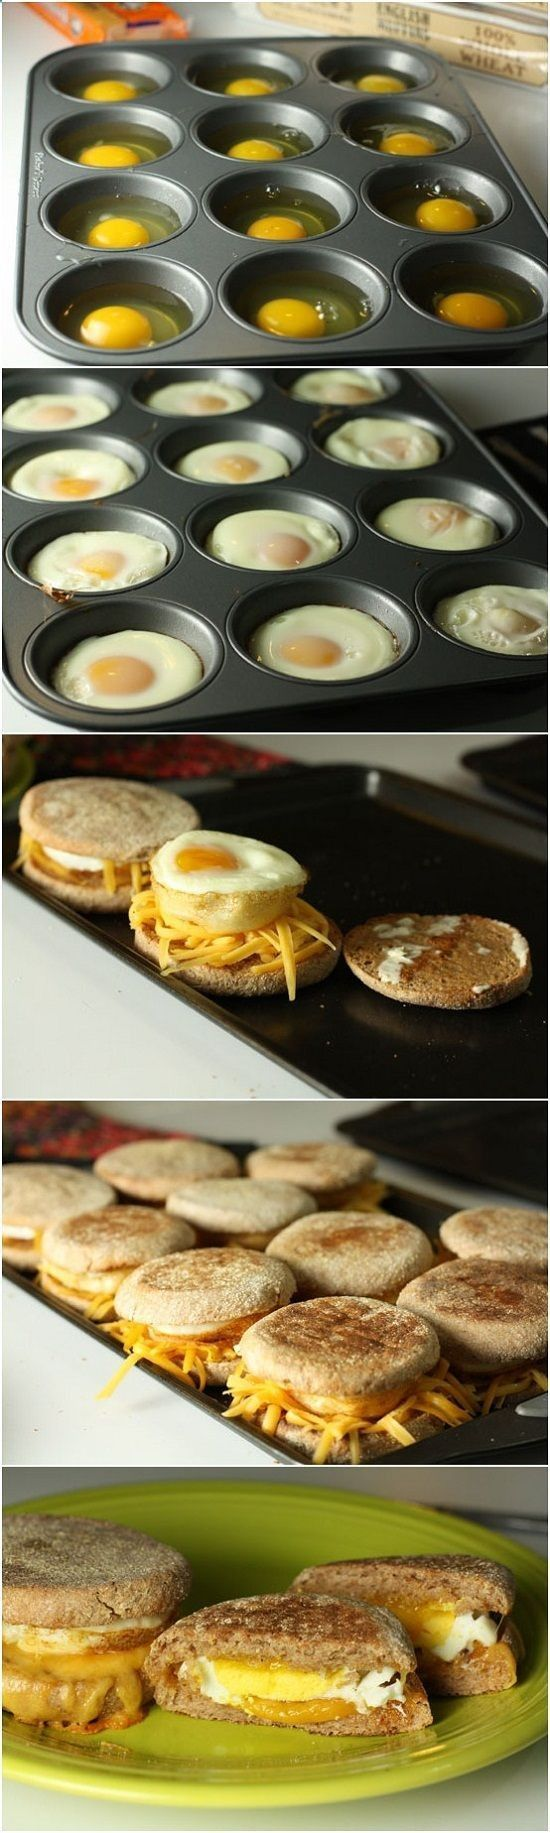 Making a big family breakfast? Check out this cool trick for cooking eggs for breakfast sandwiches! I definitely want to try this. /BR   Where Home Starts